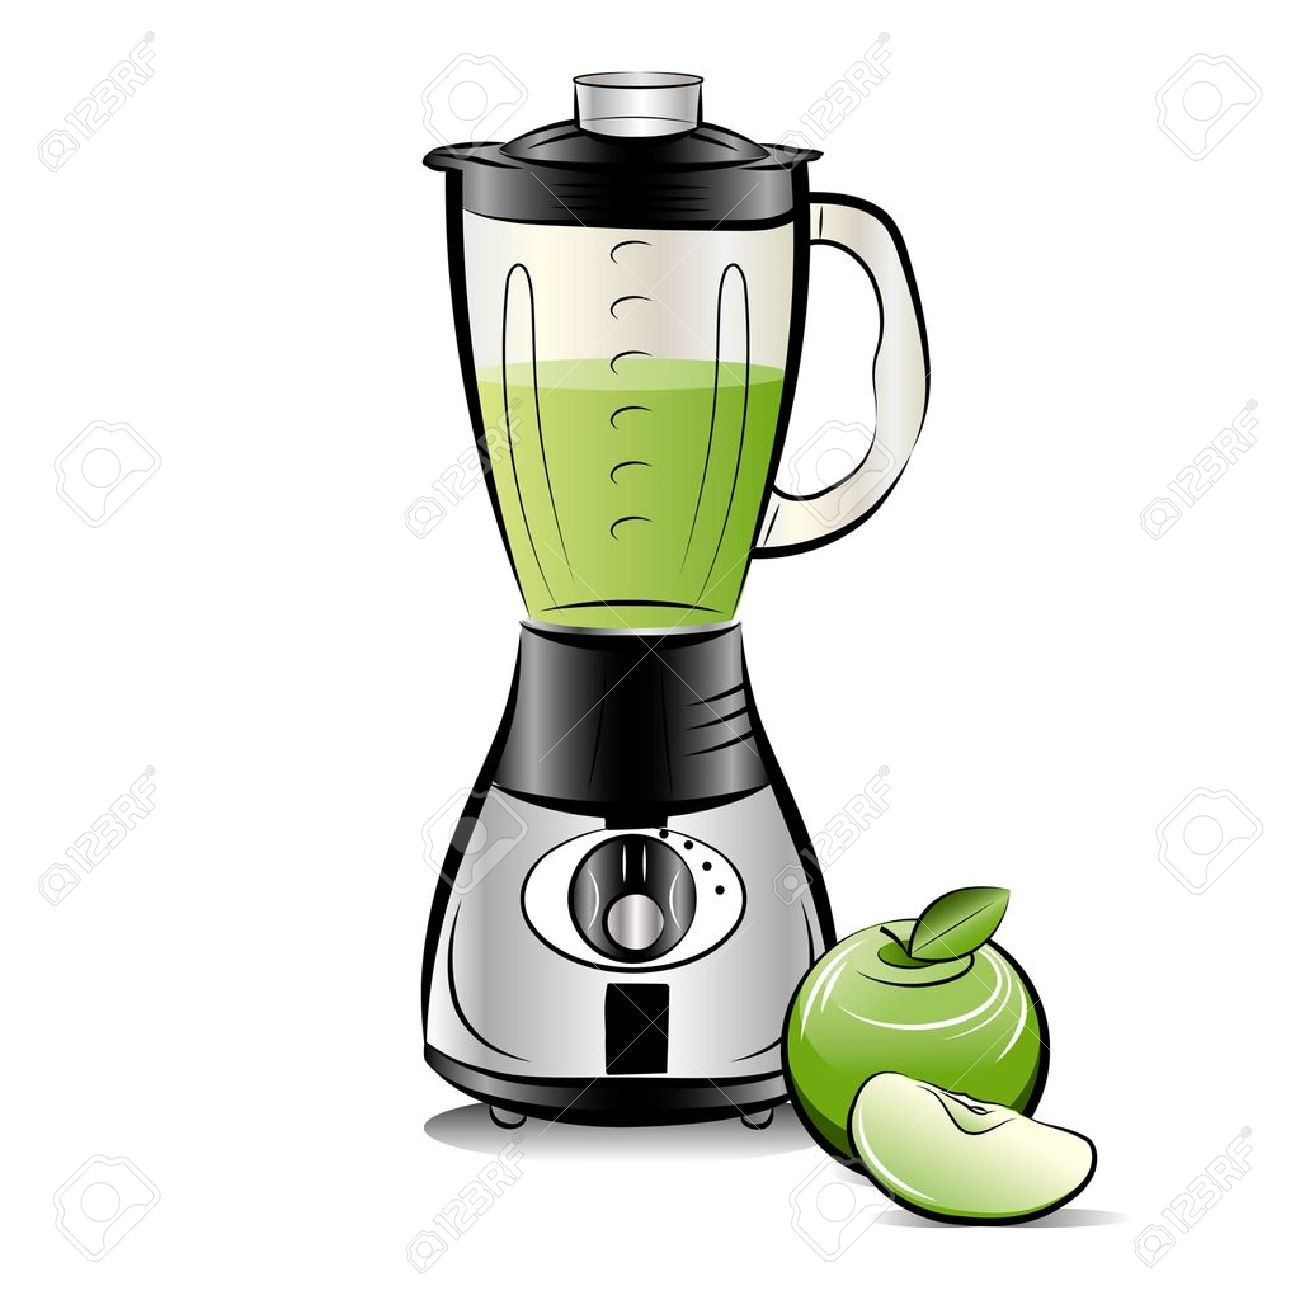 Juice Maker Machine Clip Art.